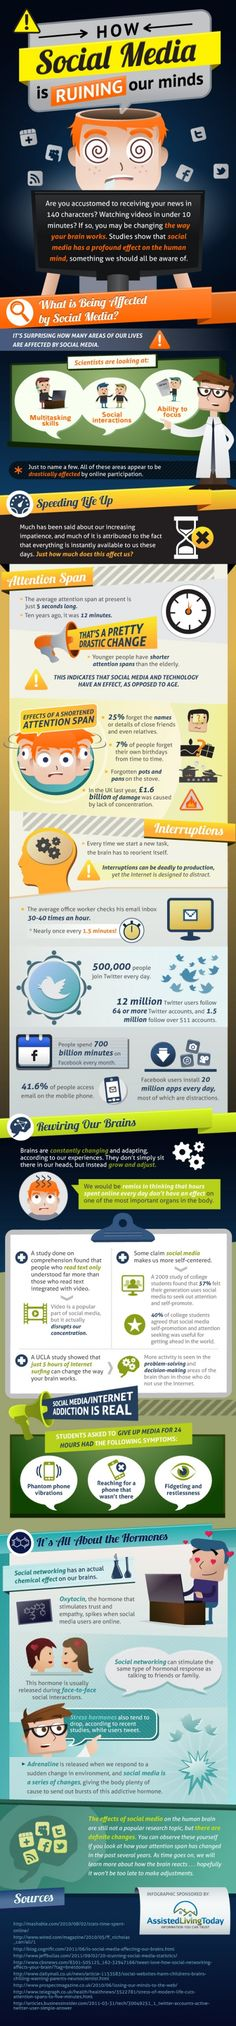 Is Social Media ruining your minds?? An infographic describing the effects of Social Media